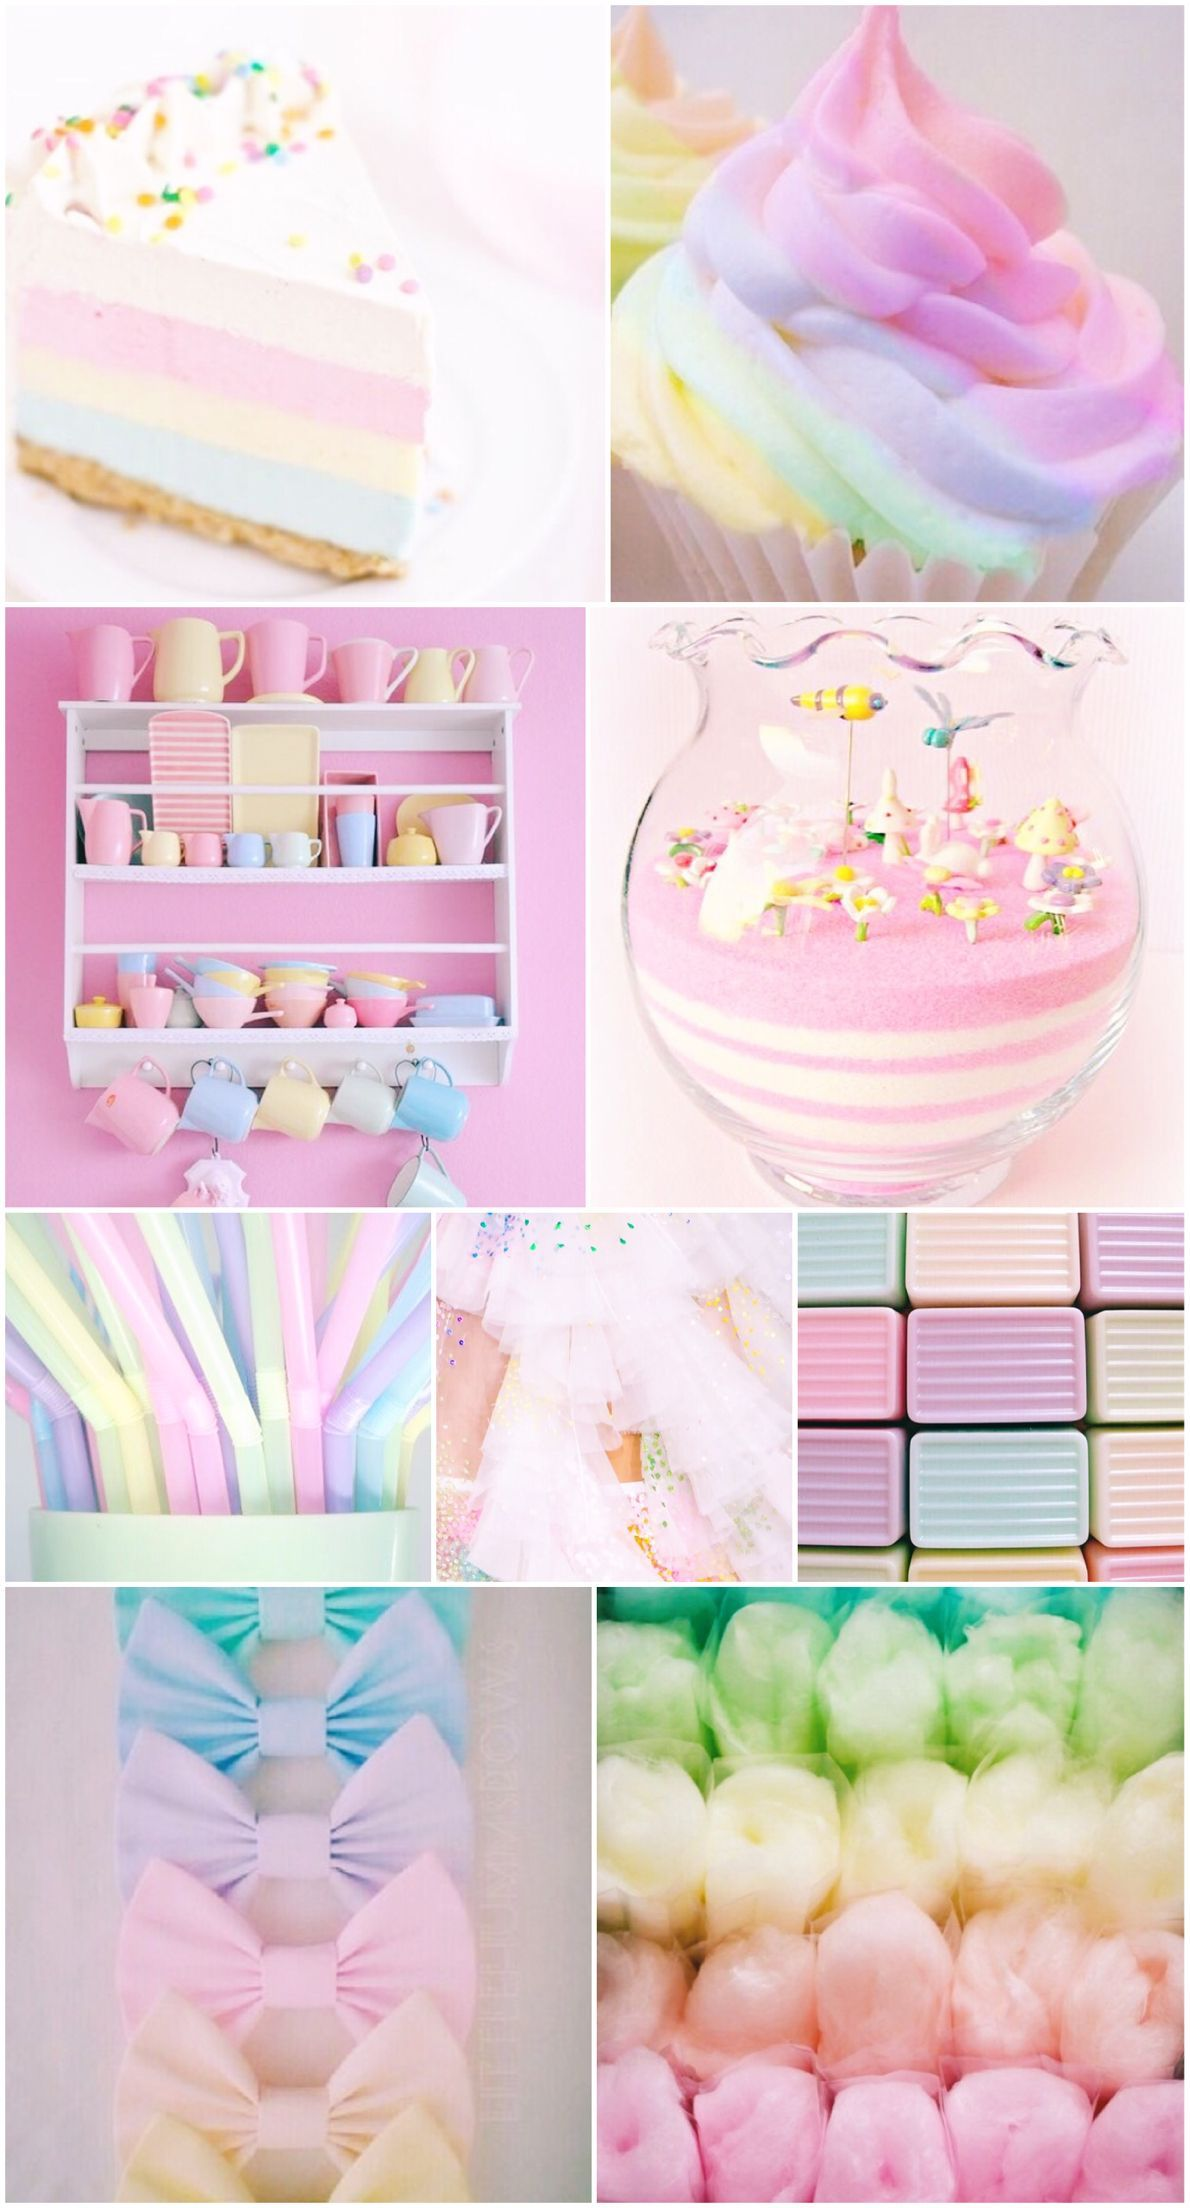 Aesthetic Candy Wallpapers - Top Free Aesthetic Candy ...